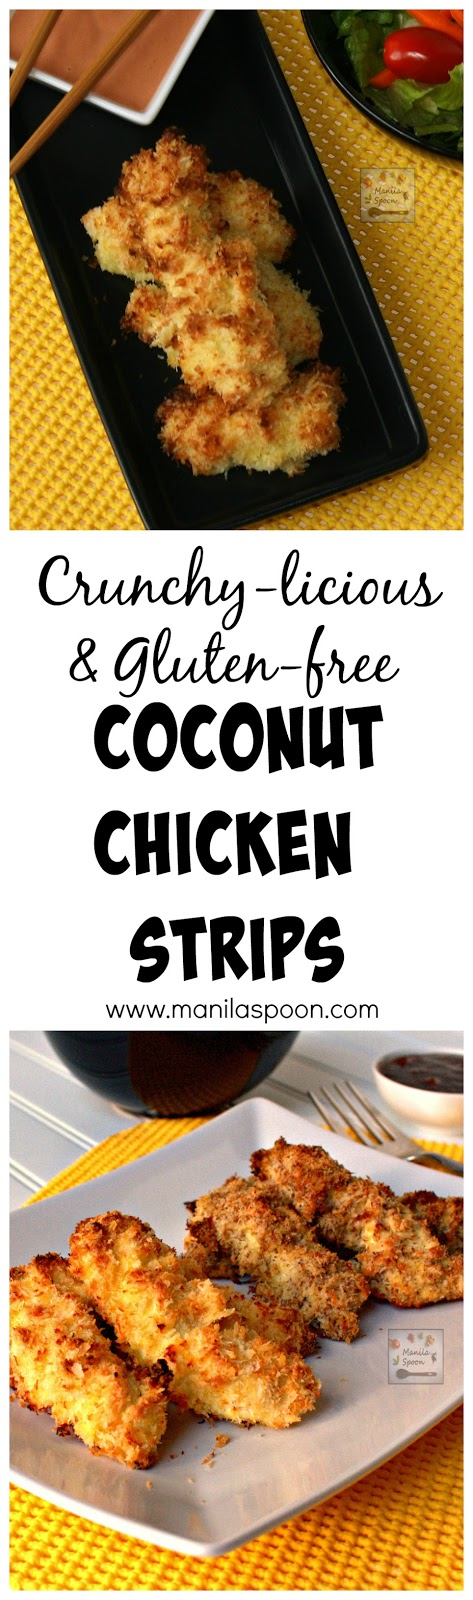 These delicious and crunchy Coconut Chicken Strips are tried and tested and easy to make. My whole family enjoys these nibbles. Can be made gluten-free, if preferred.